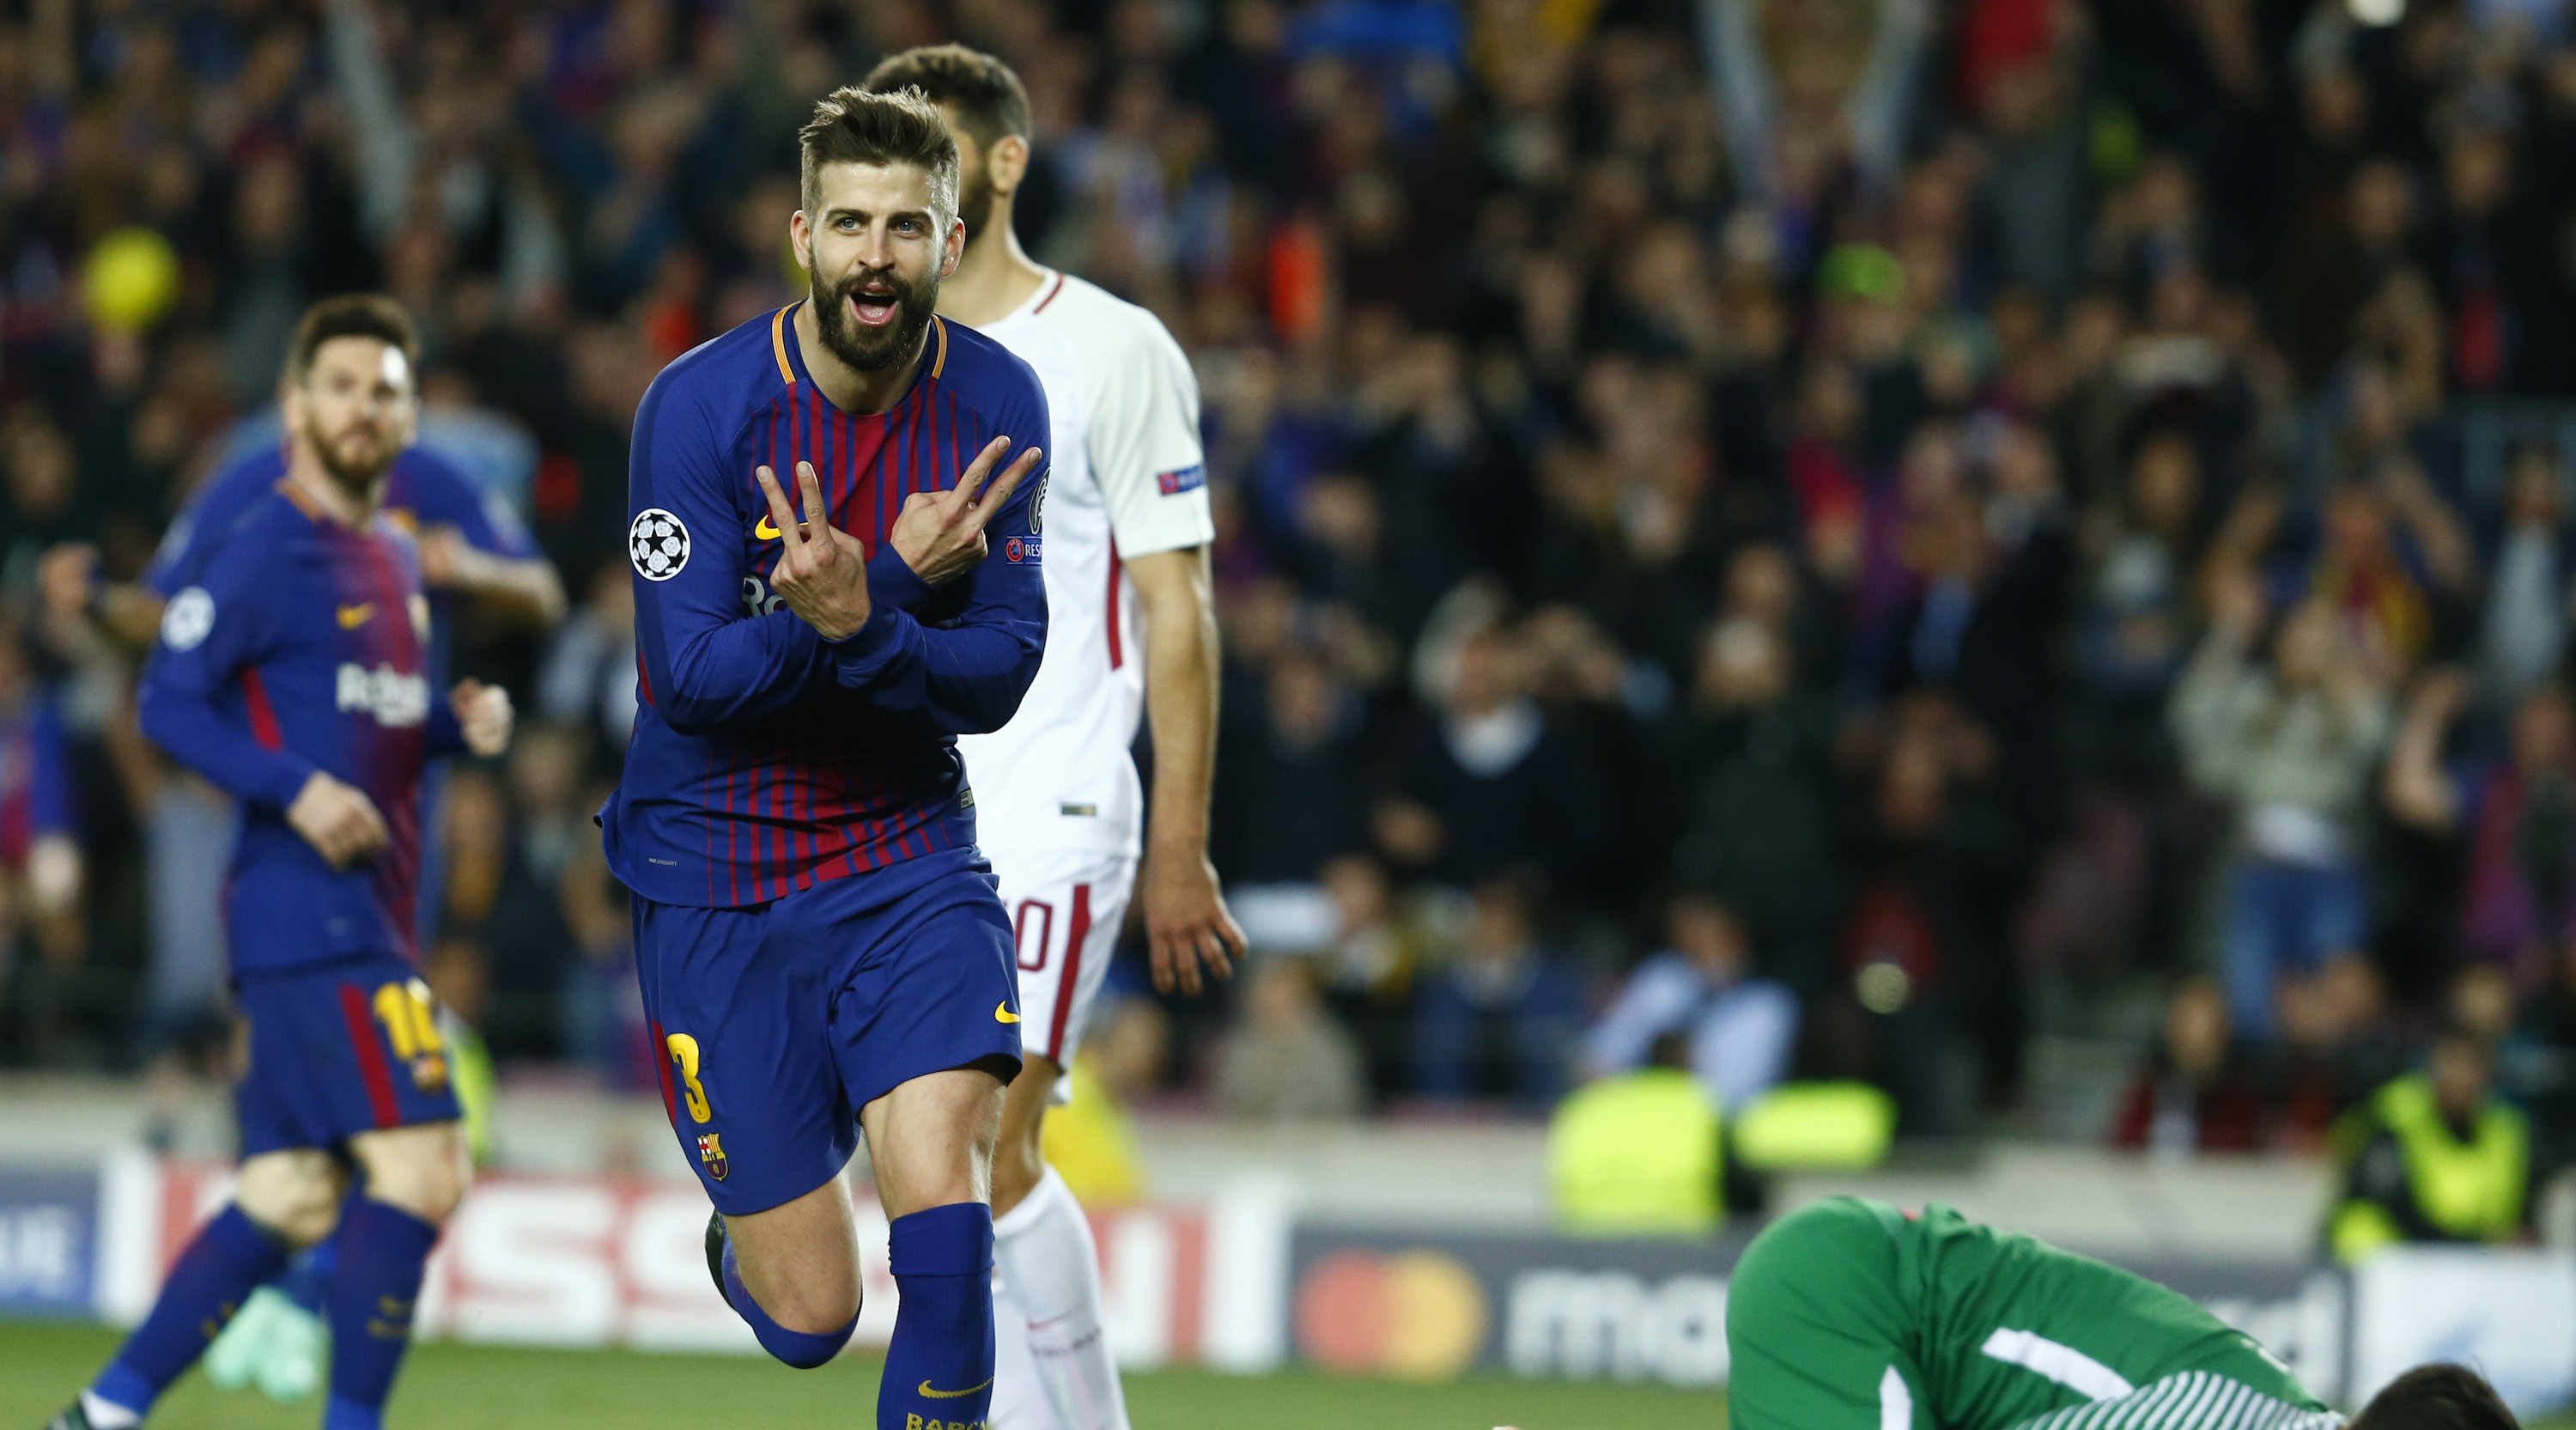 Barcelona's Spanish defender Gerard Pique celebrates a goal during the UEFA Champions League quarter-final first leg football match between FC Barcelona and AS Roma at the Camp Nou Stadium in Barcelona on April 4, 2018. / AFP PHOTO / Pau Barrena (Photo credit should read PAU BARRENA/AFP/Getty Images)